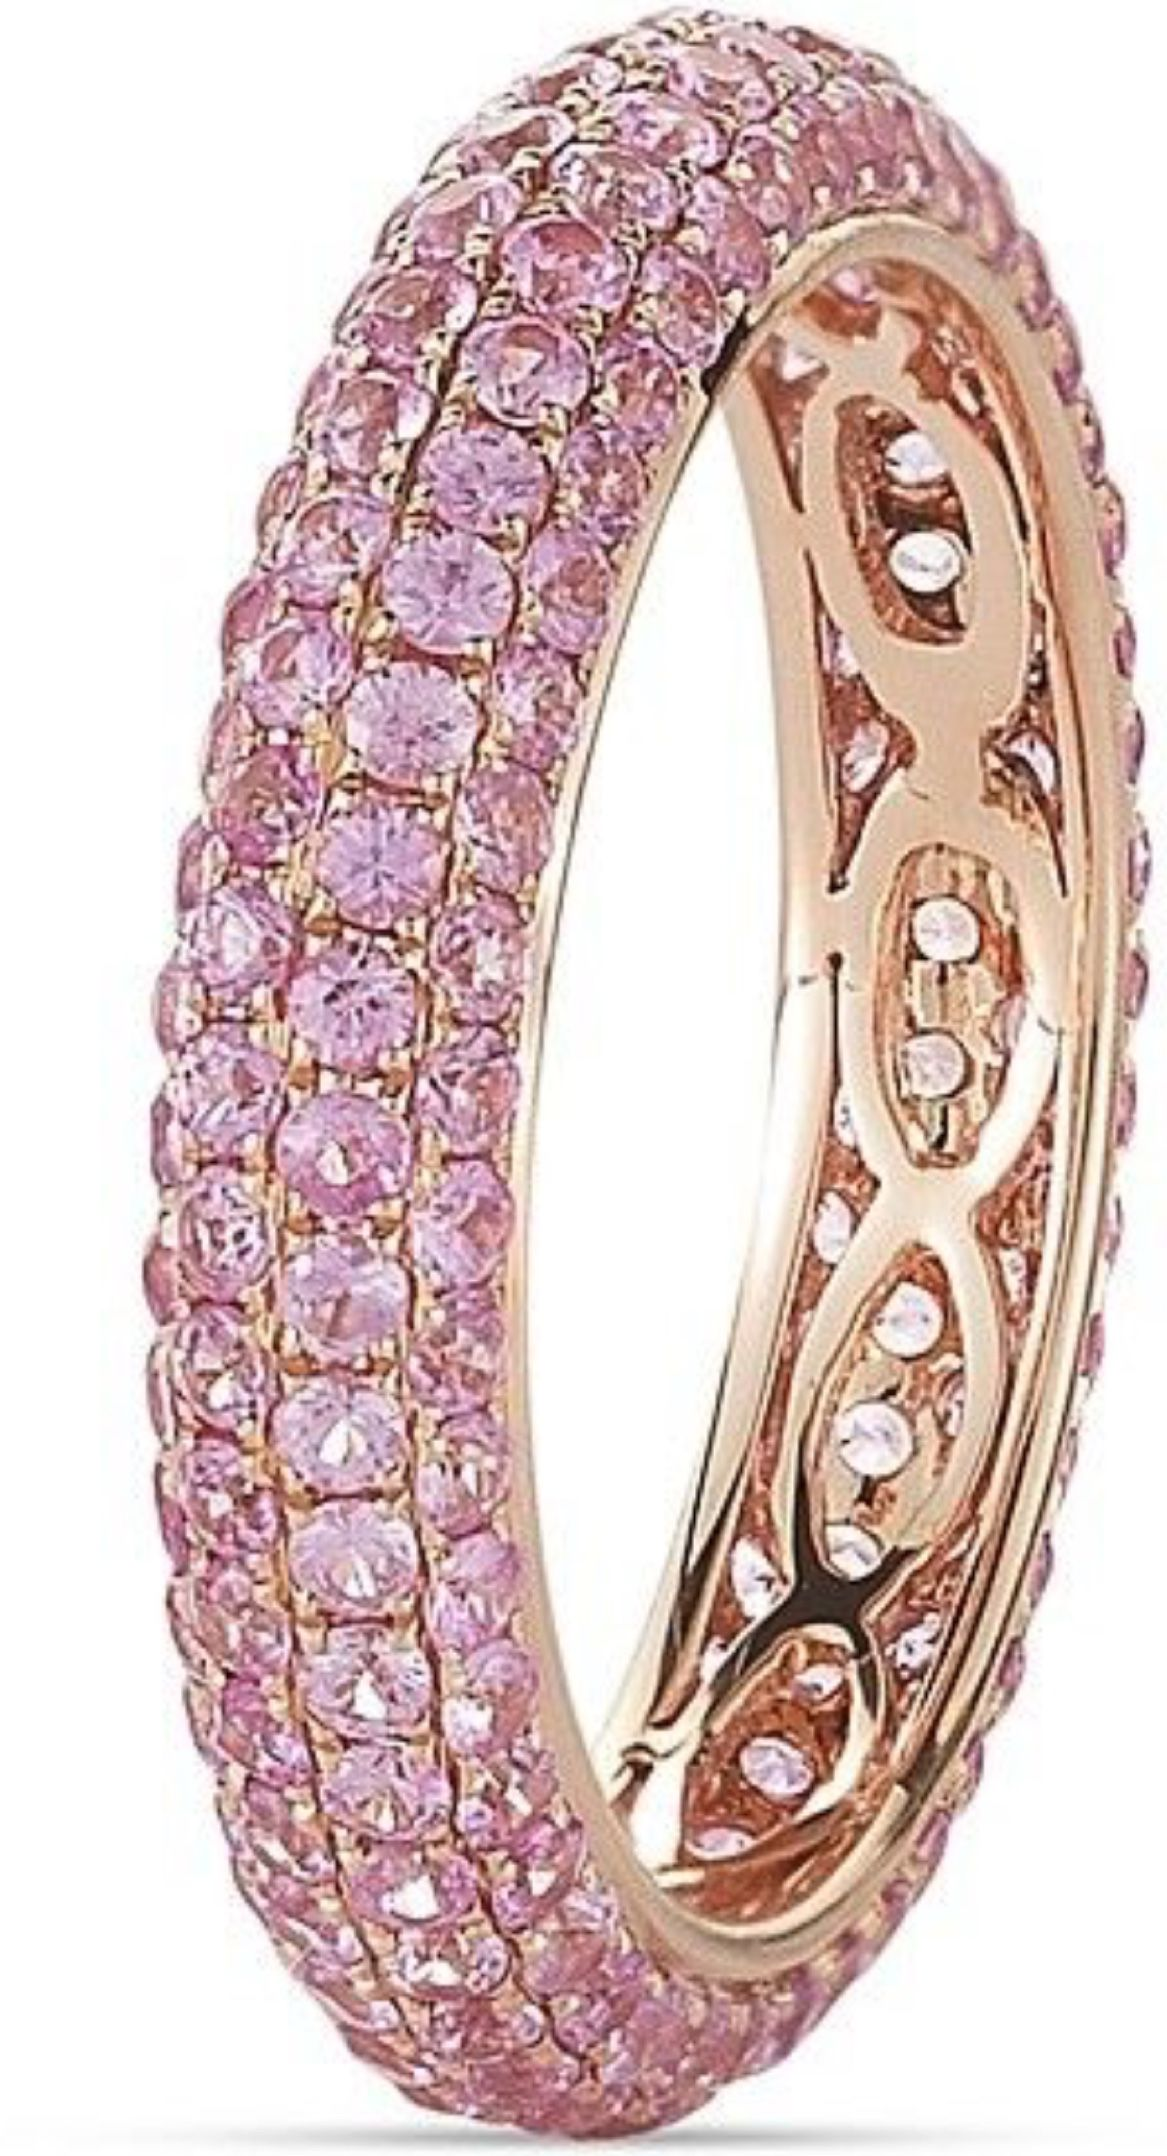 Pink bling! | Pinks. | Pinterest | Pink bling, Bling and Jewel